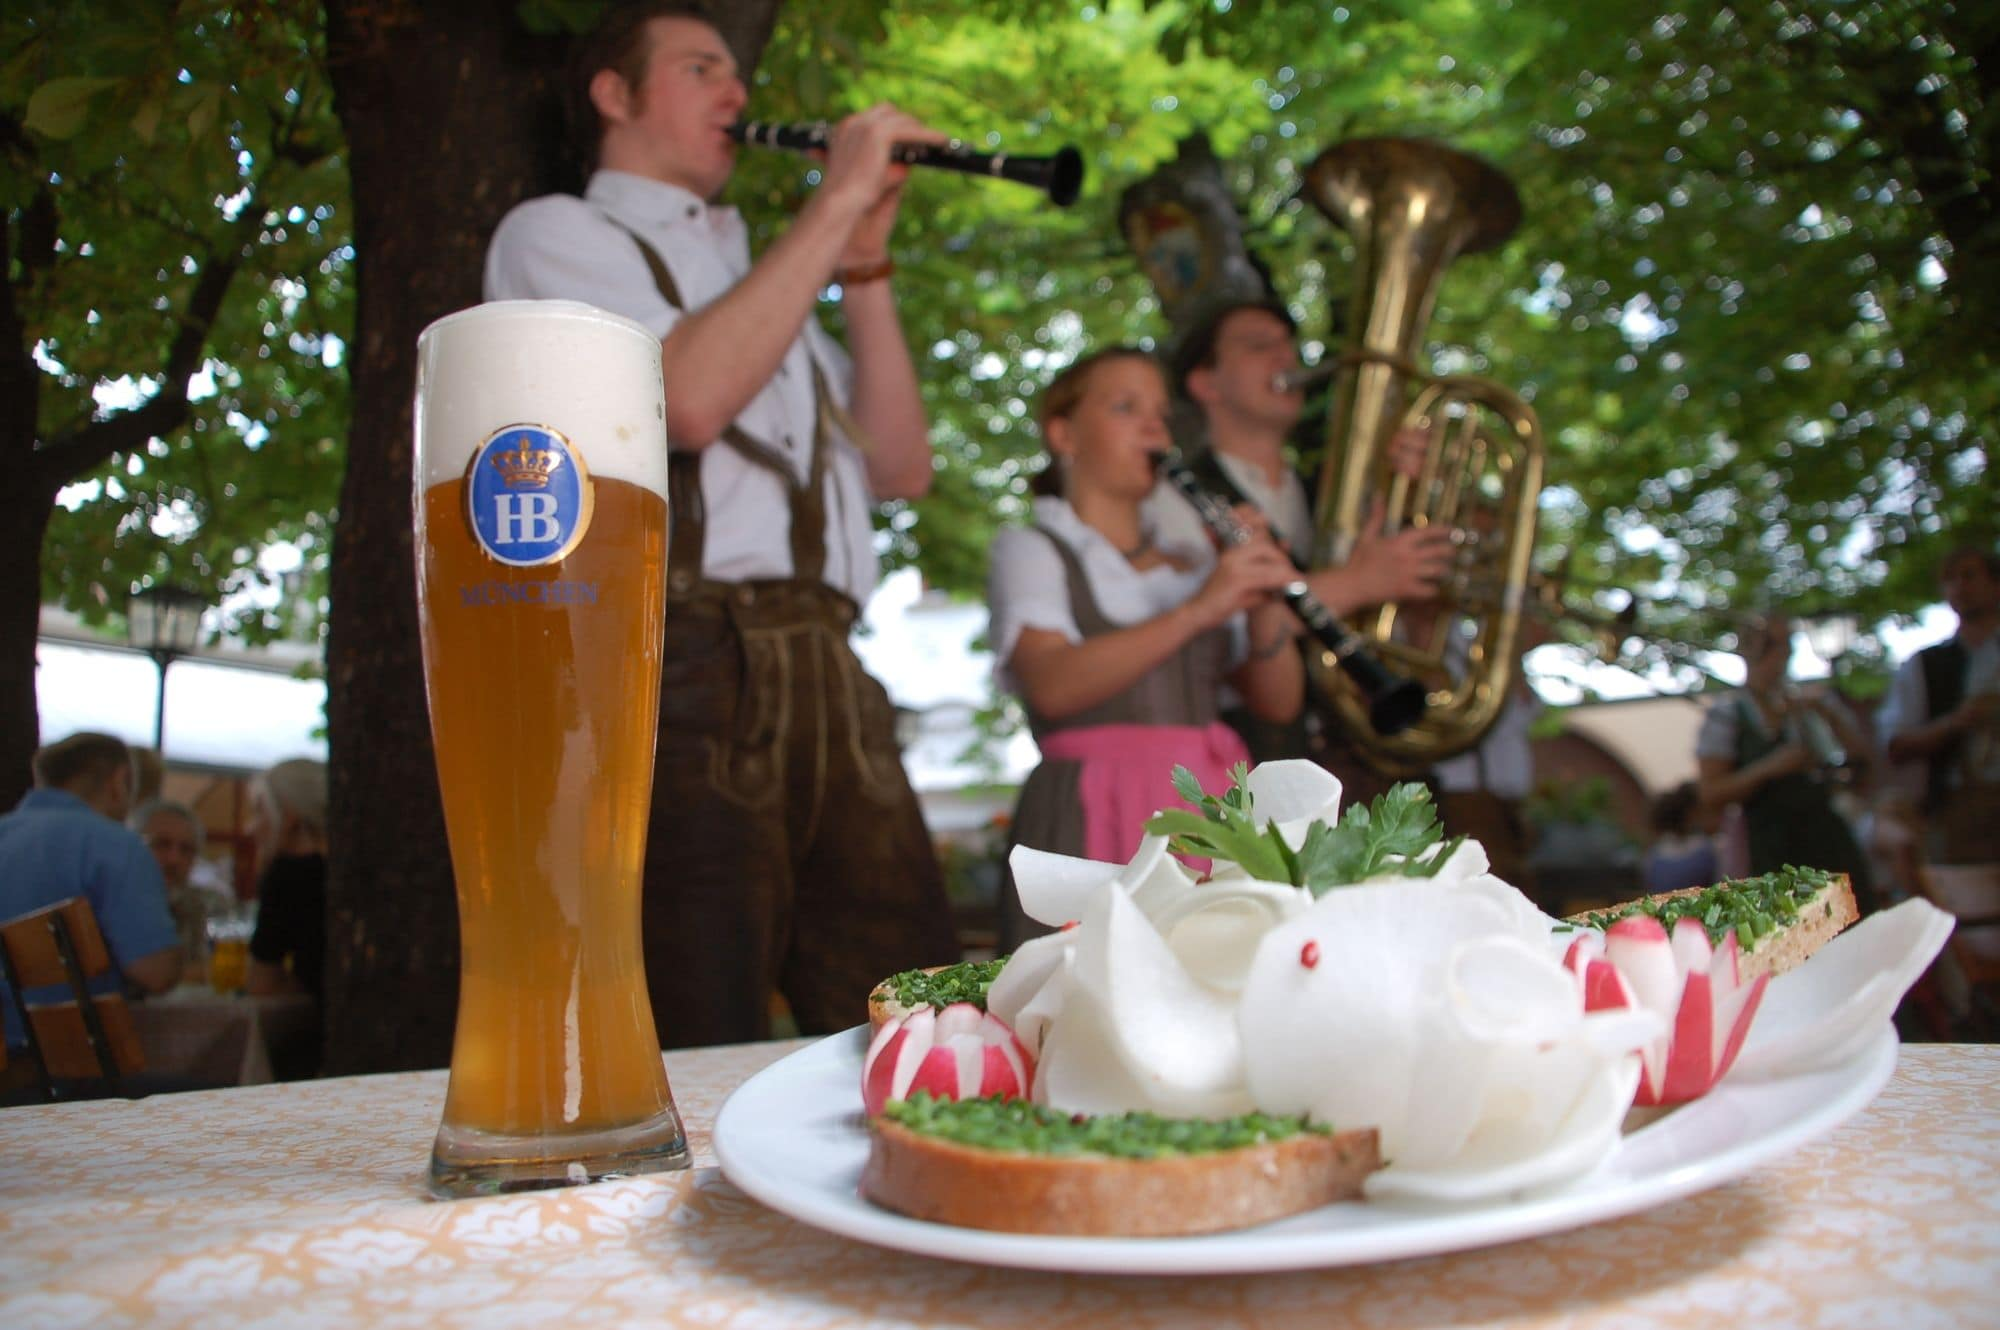 Enjoy traditional Bavarian beers and cuisine at the Hofbraeuhaus in Munich with kids